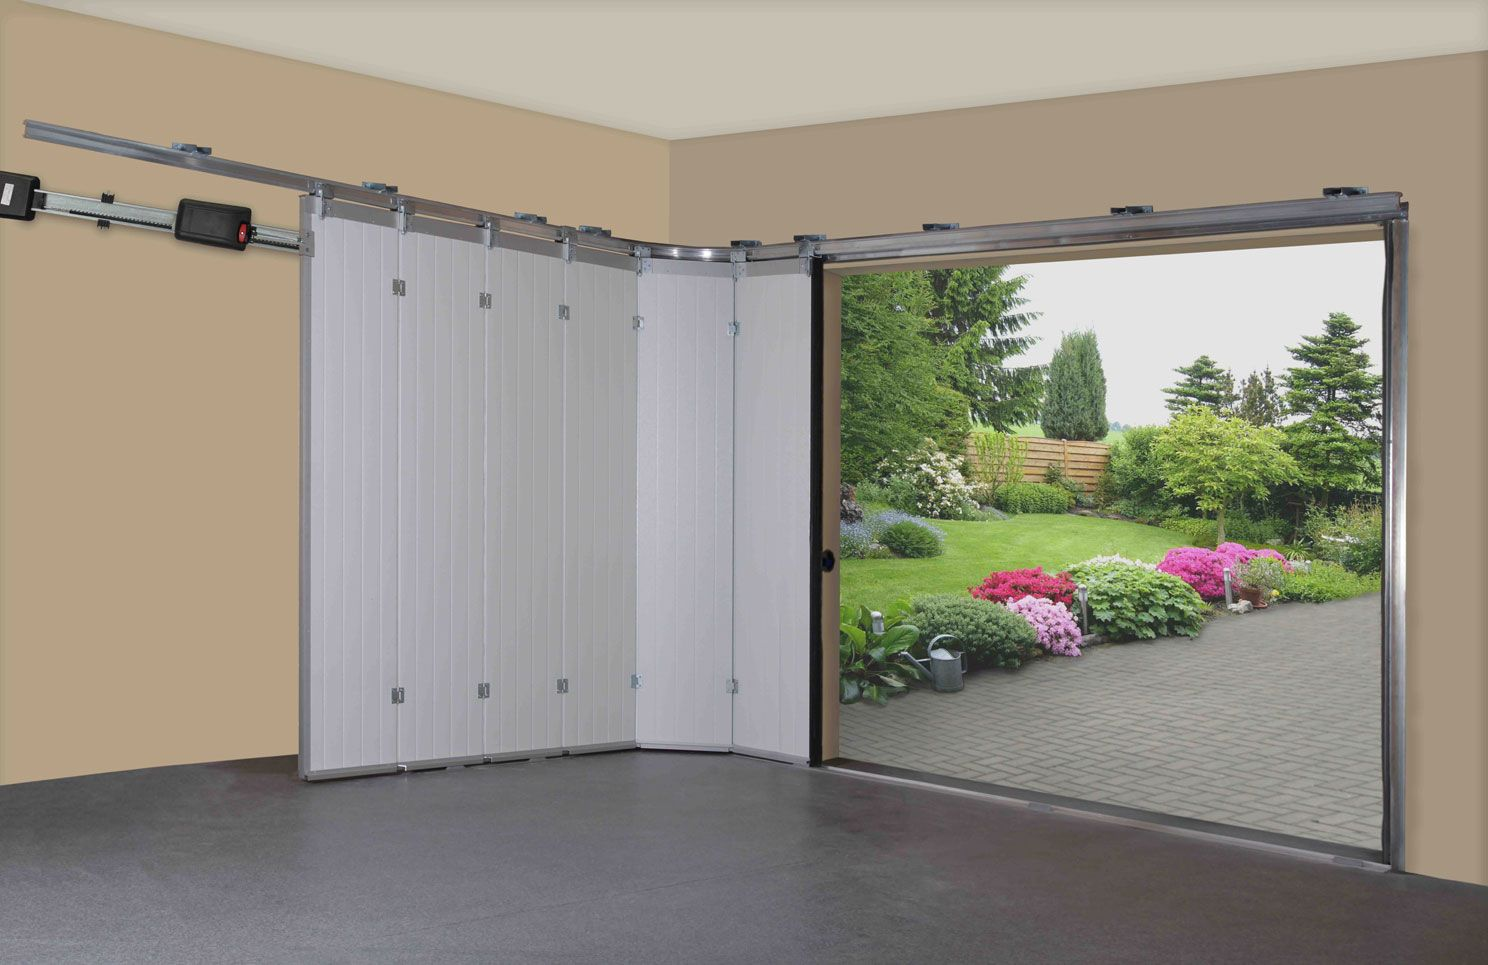 Delightful 10 Mind Blowing Garage Doors Guide That Will Make You Shocking